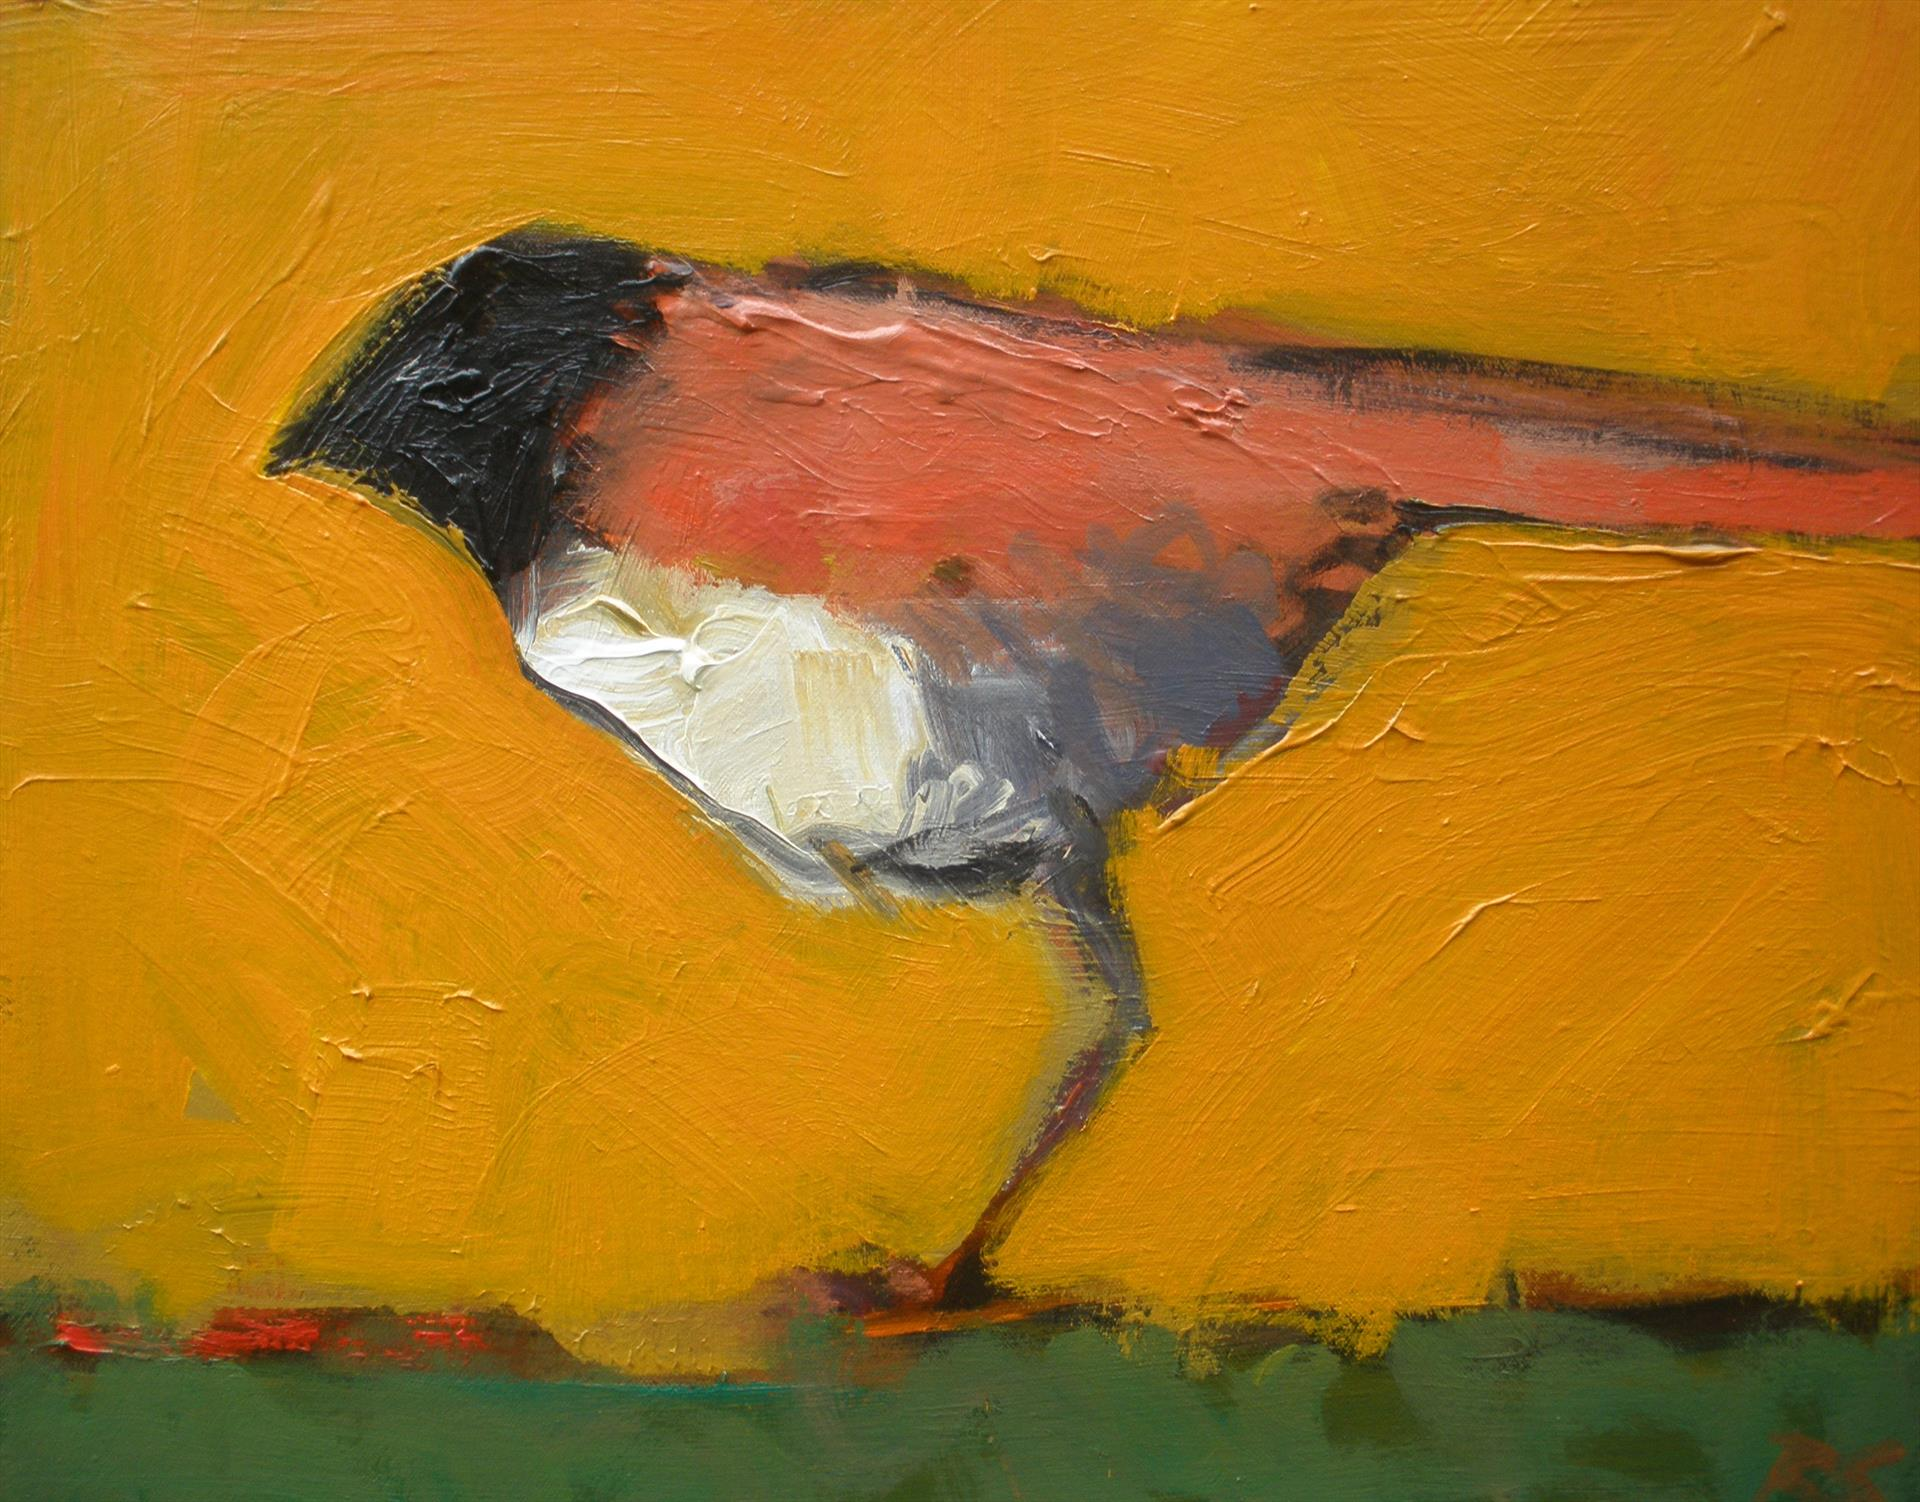 profile of a bird, bold flat colors, oranges and reds